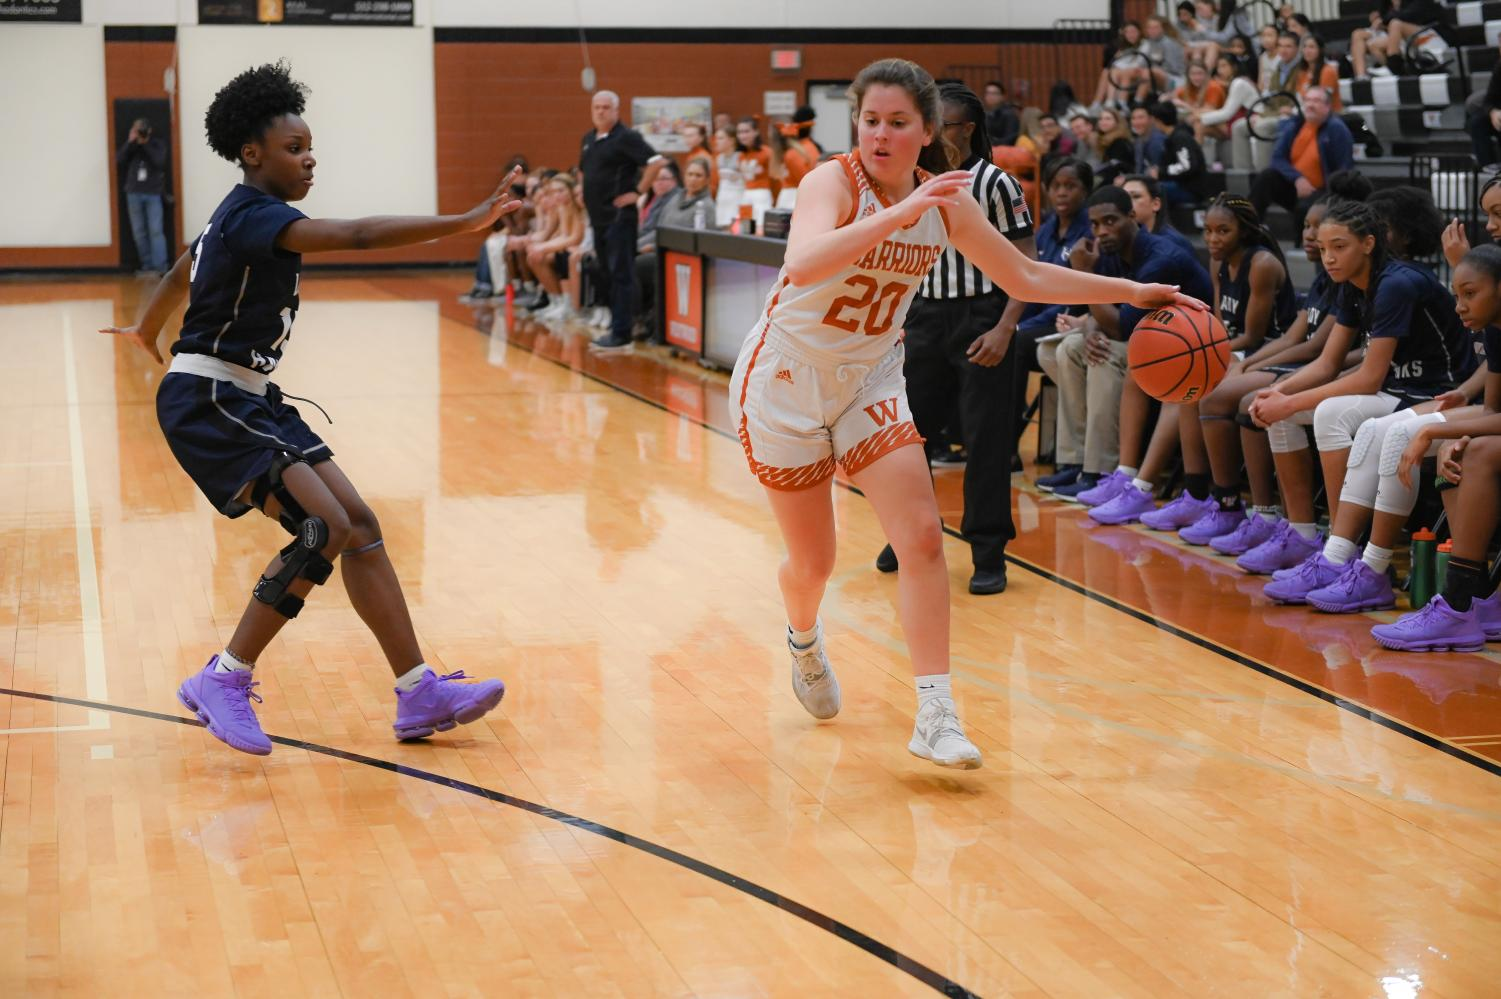 Peyton+Halley+%2721+dribbles+past+the+defense.+Halley+plays+as+guard+for+the+varsity+team.